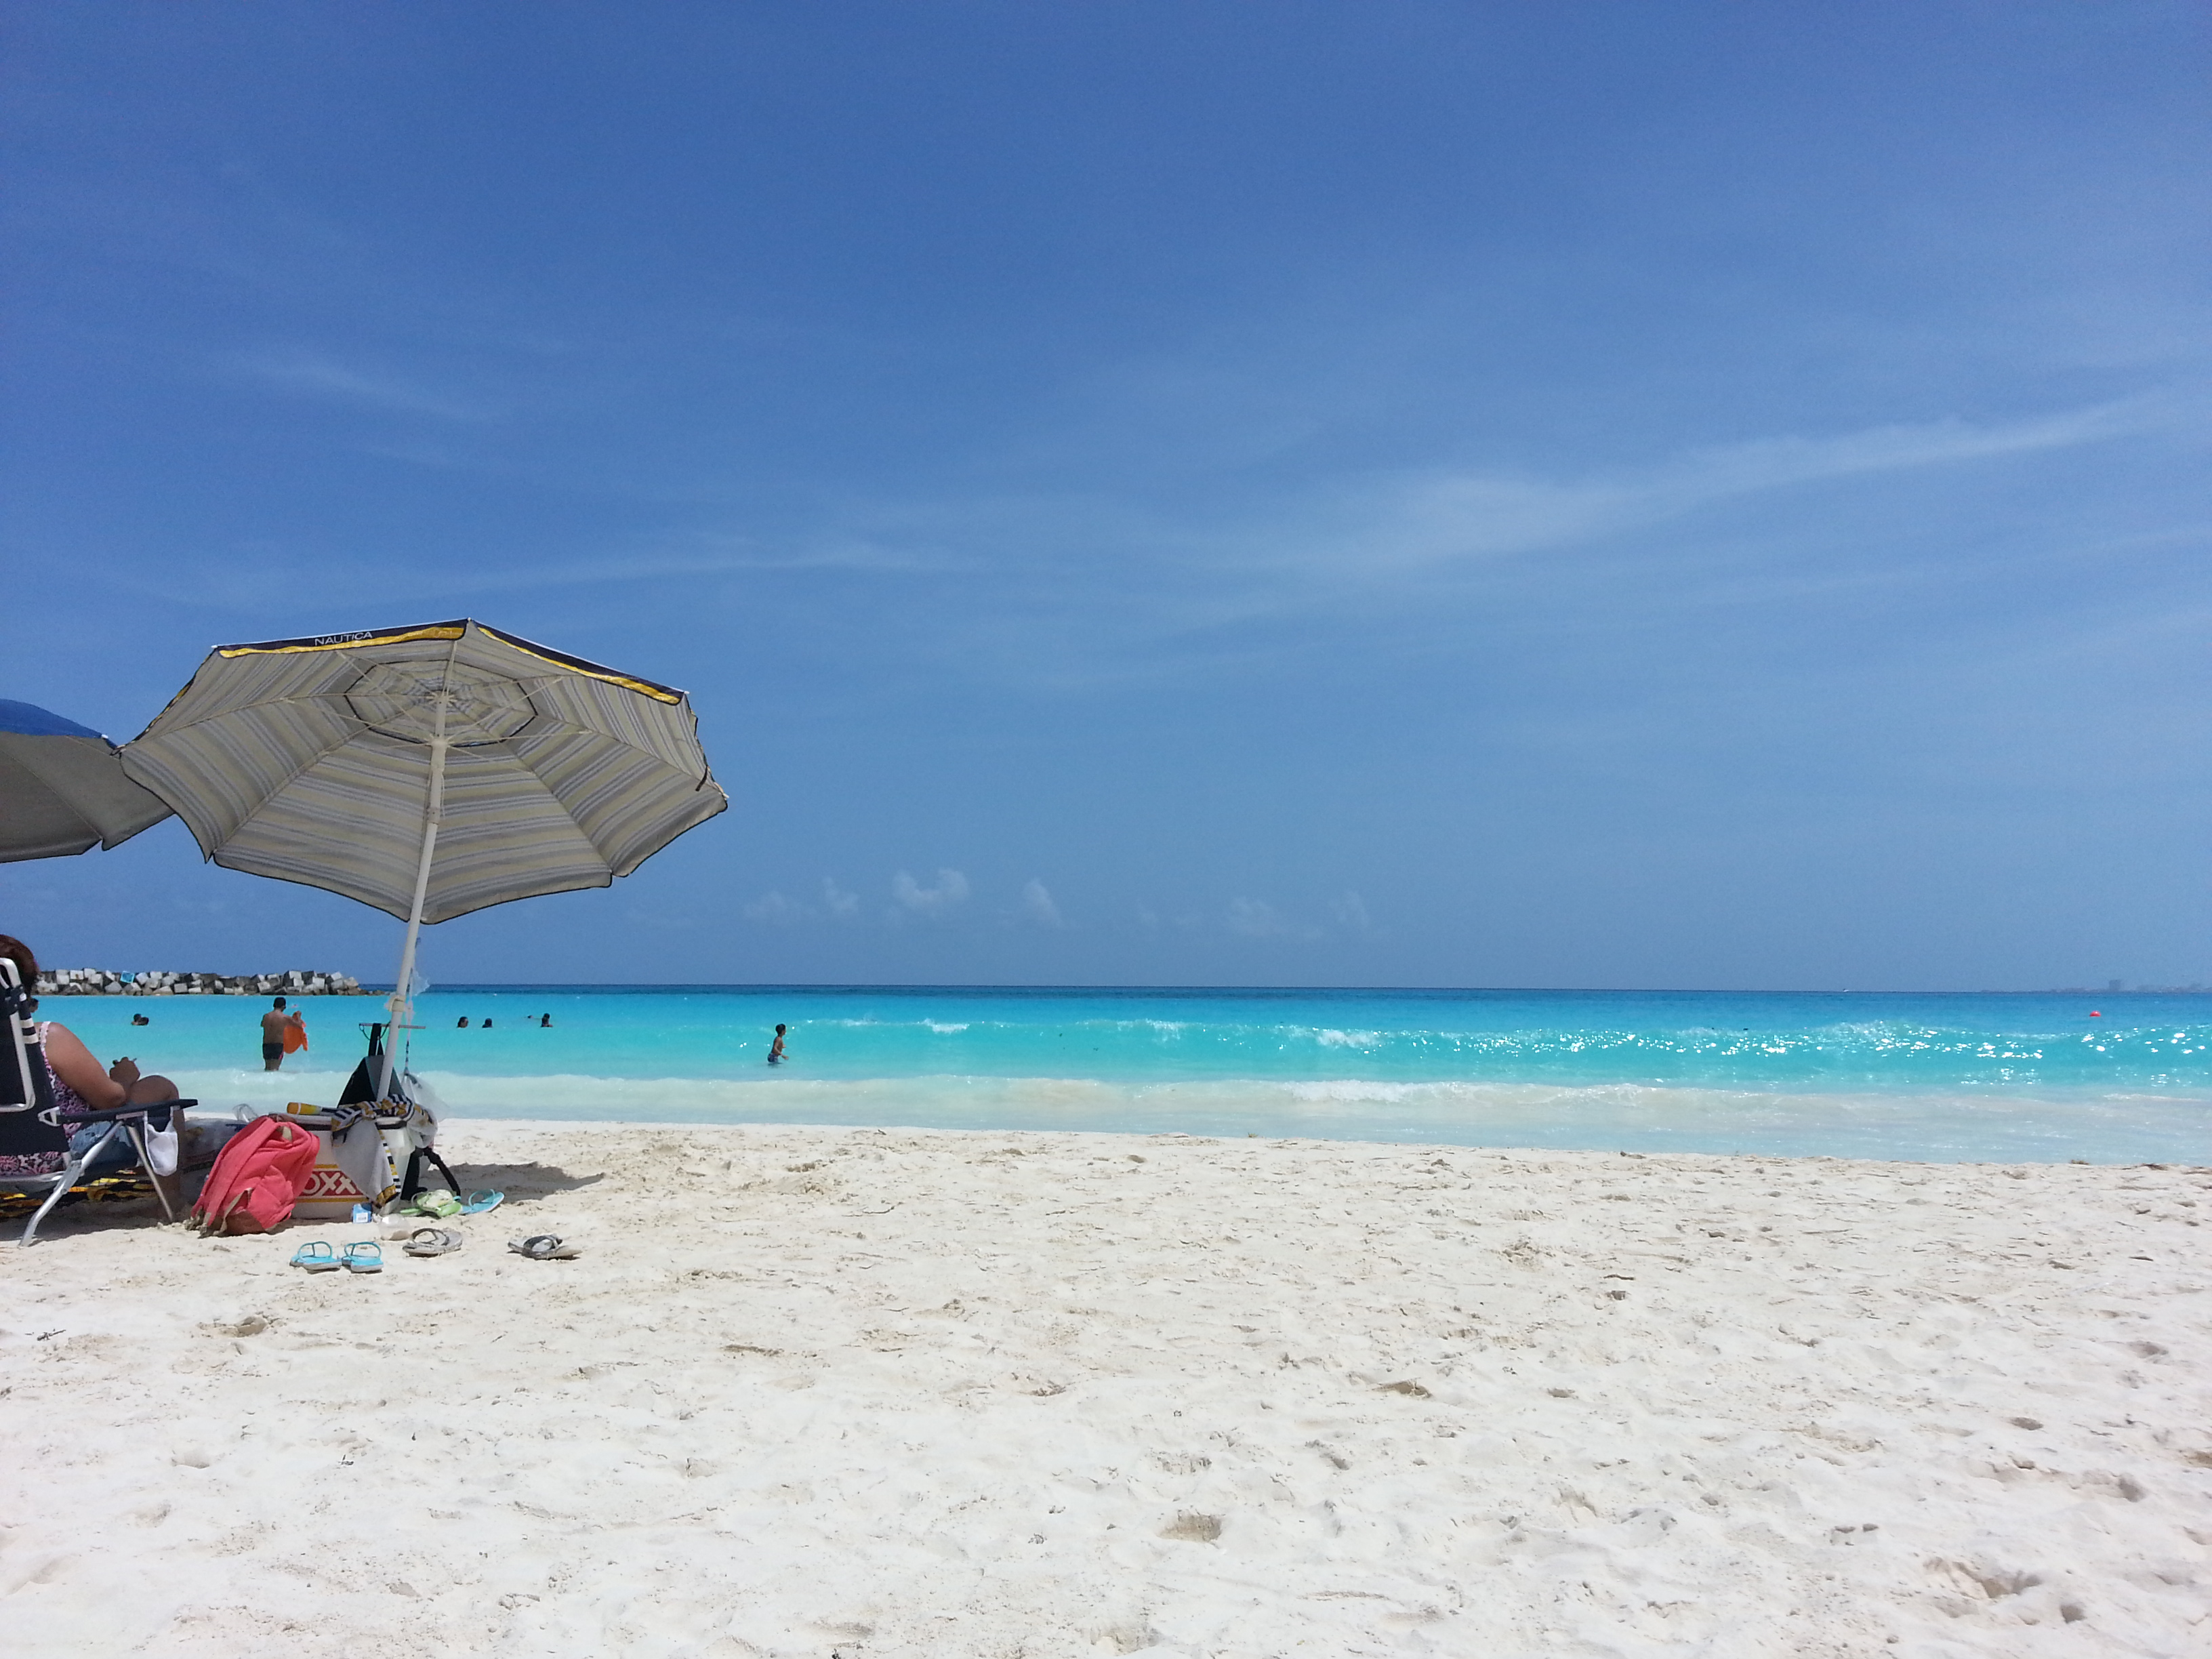 The Best Swimming Spots In Cancun